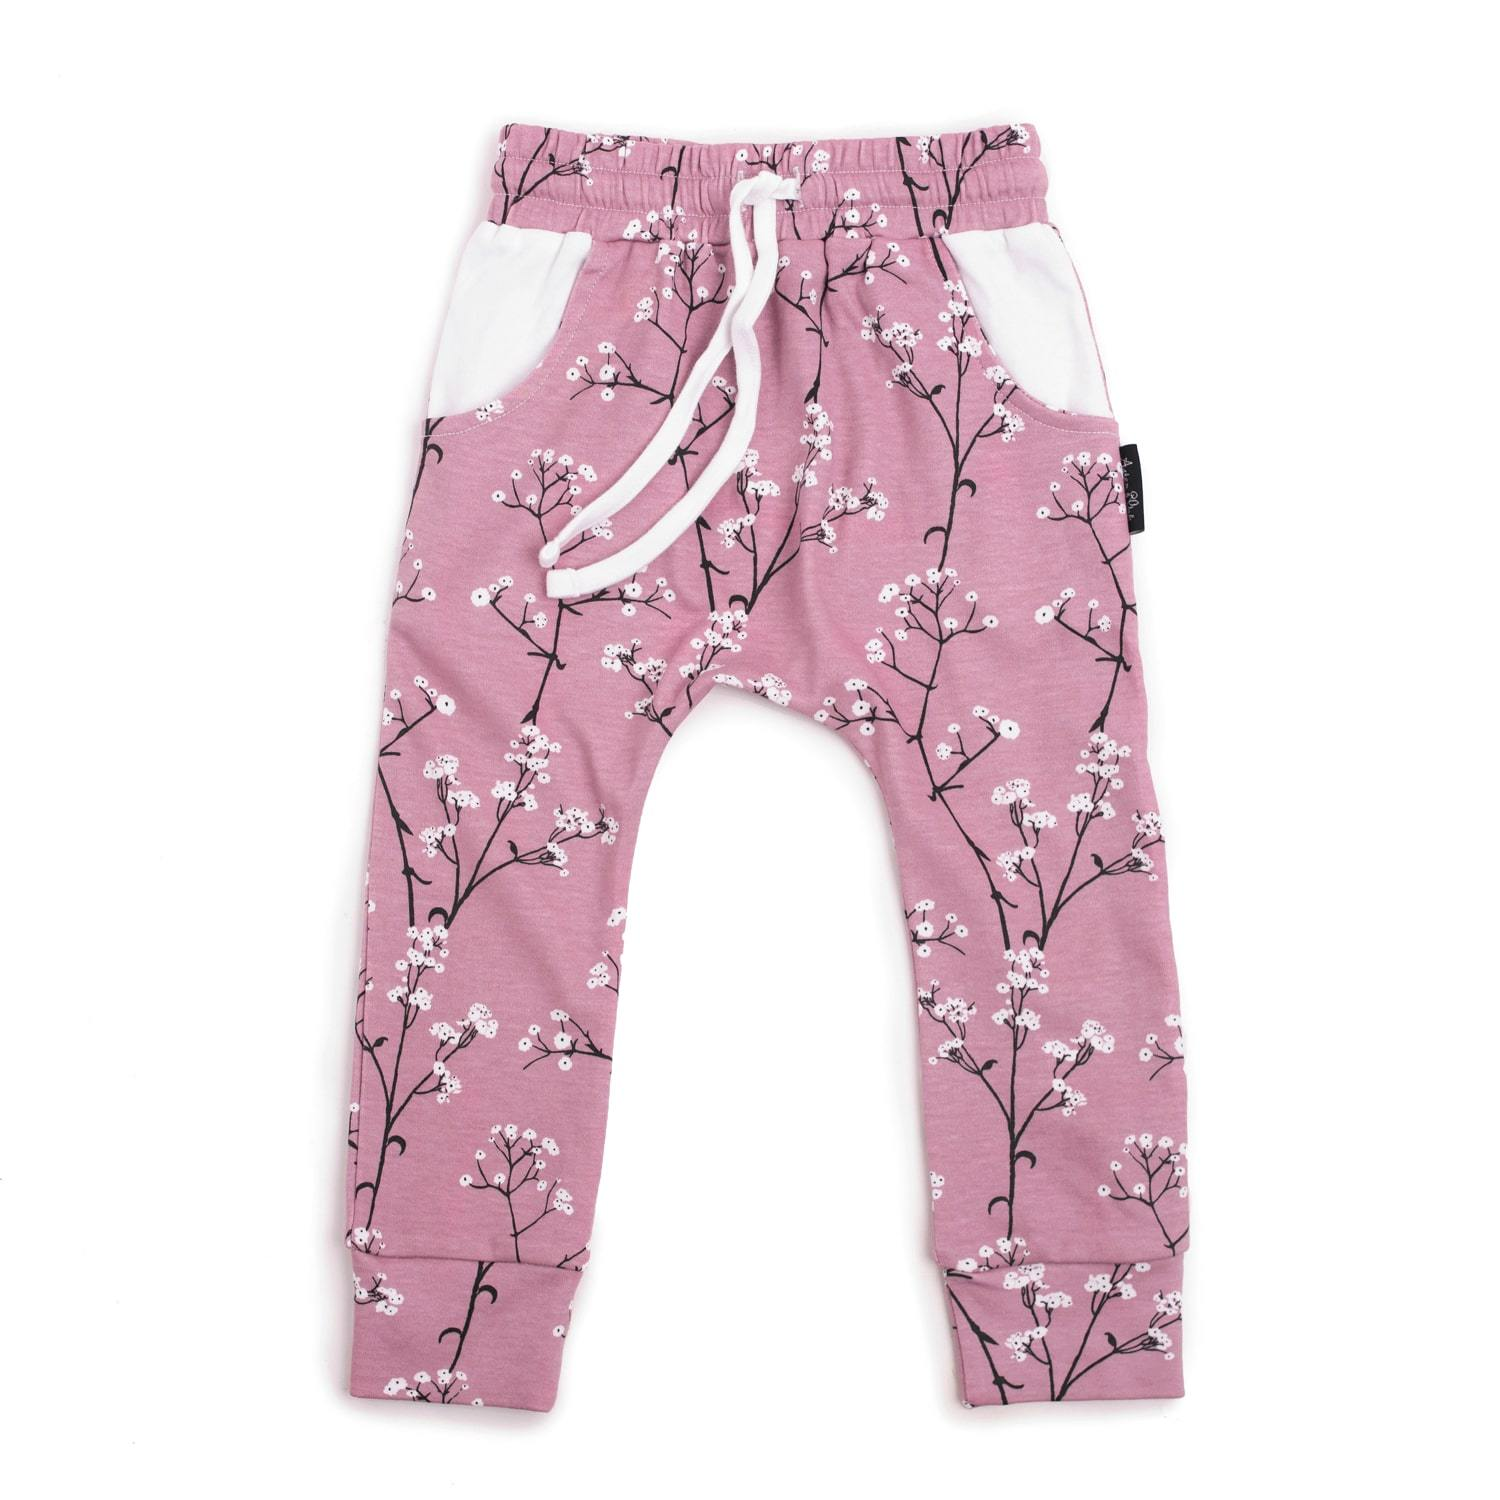 PRE-ORDER: Aster & Oak Organic Cotton Baby's Breath Harem Pants - Naked Baby Eco Boutique